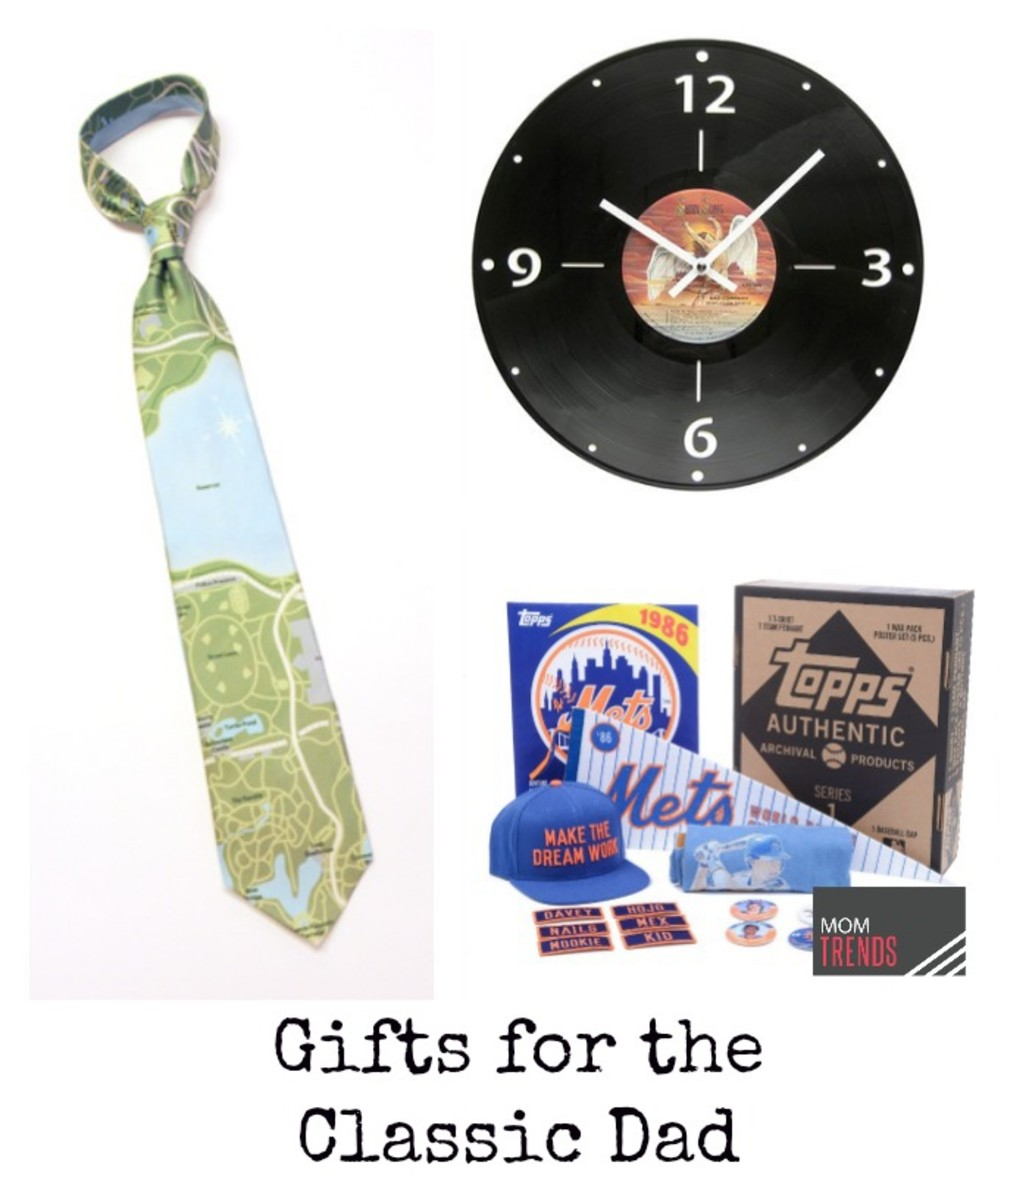 Gifts for the Classic Dad